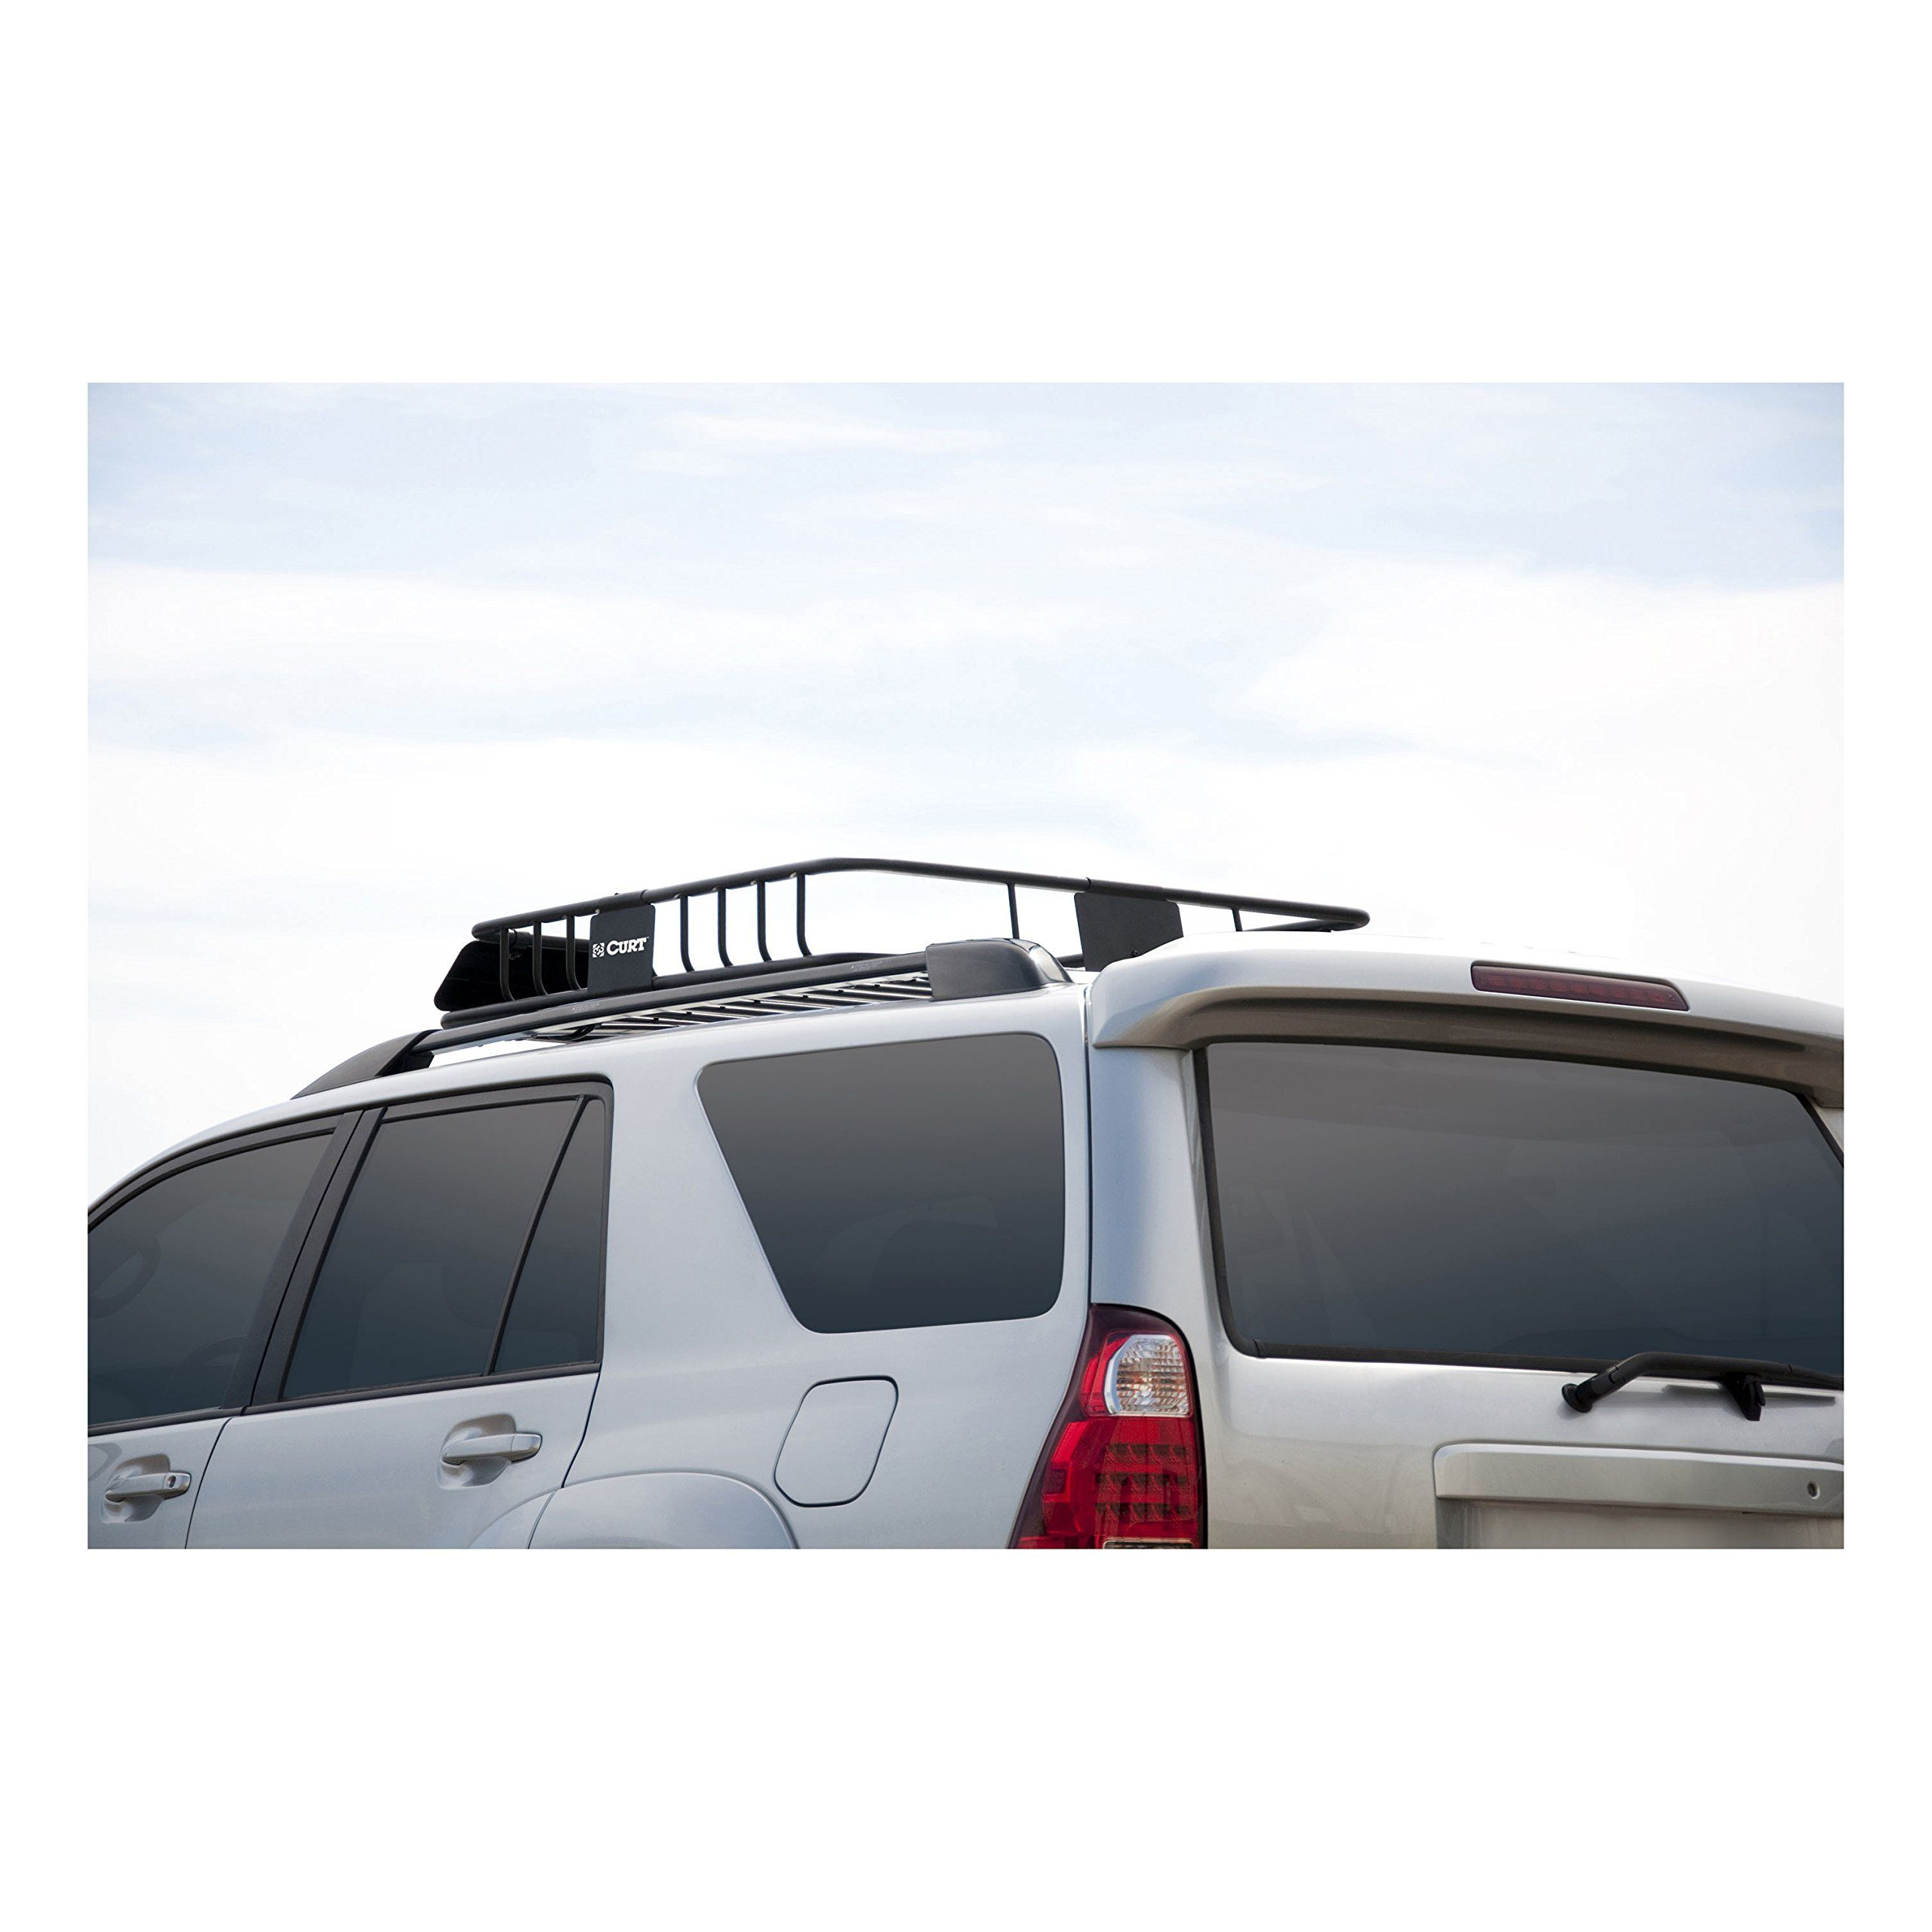 saris hitch rack products luggage bike car trace bikes freedom